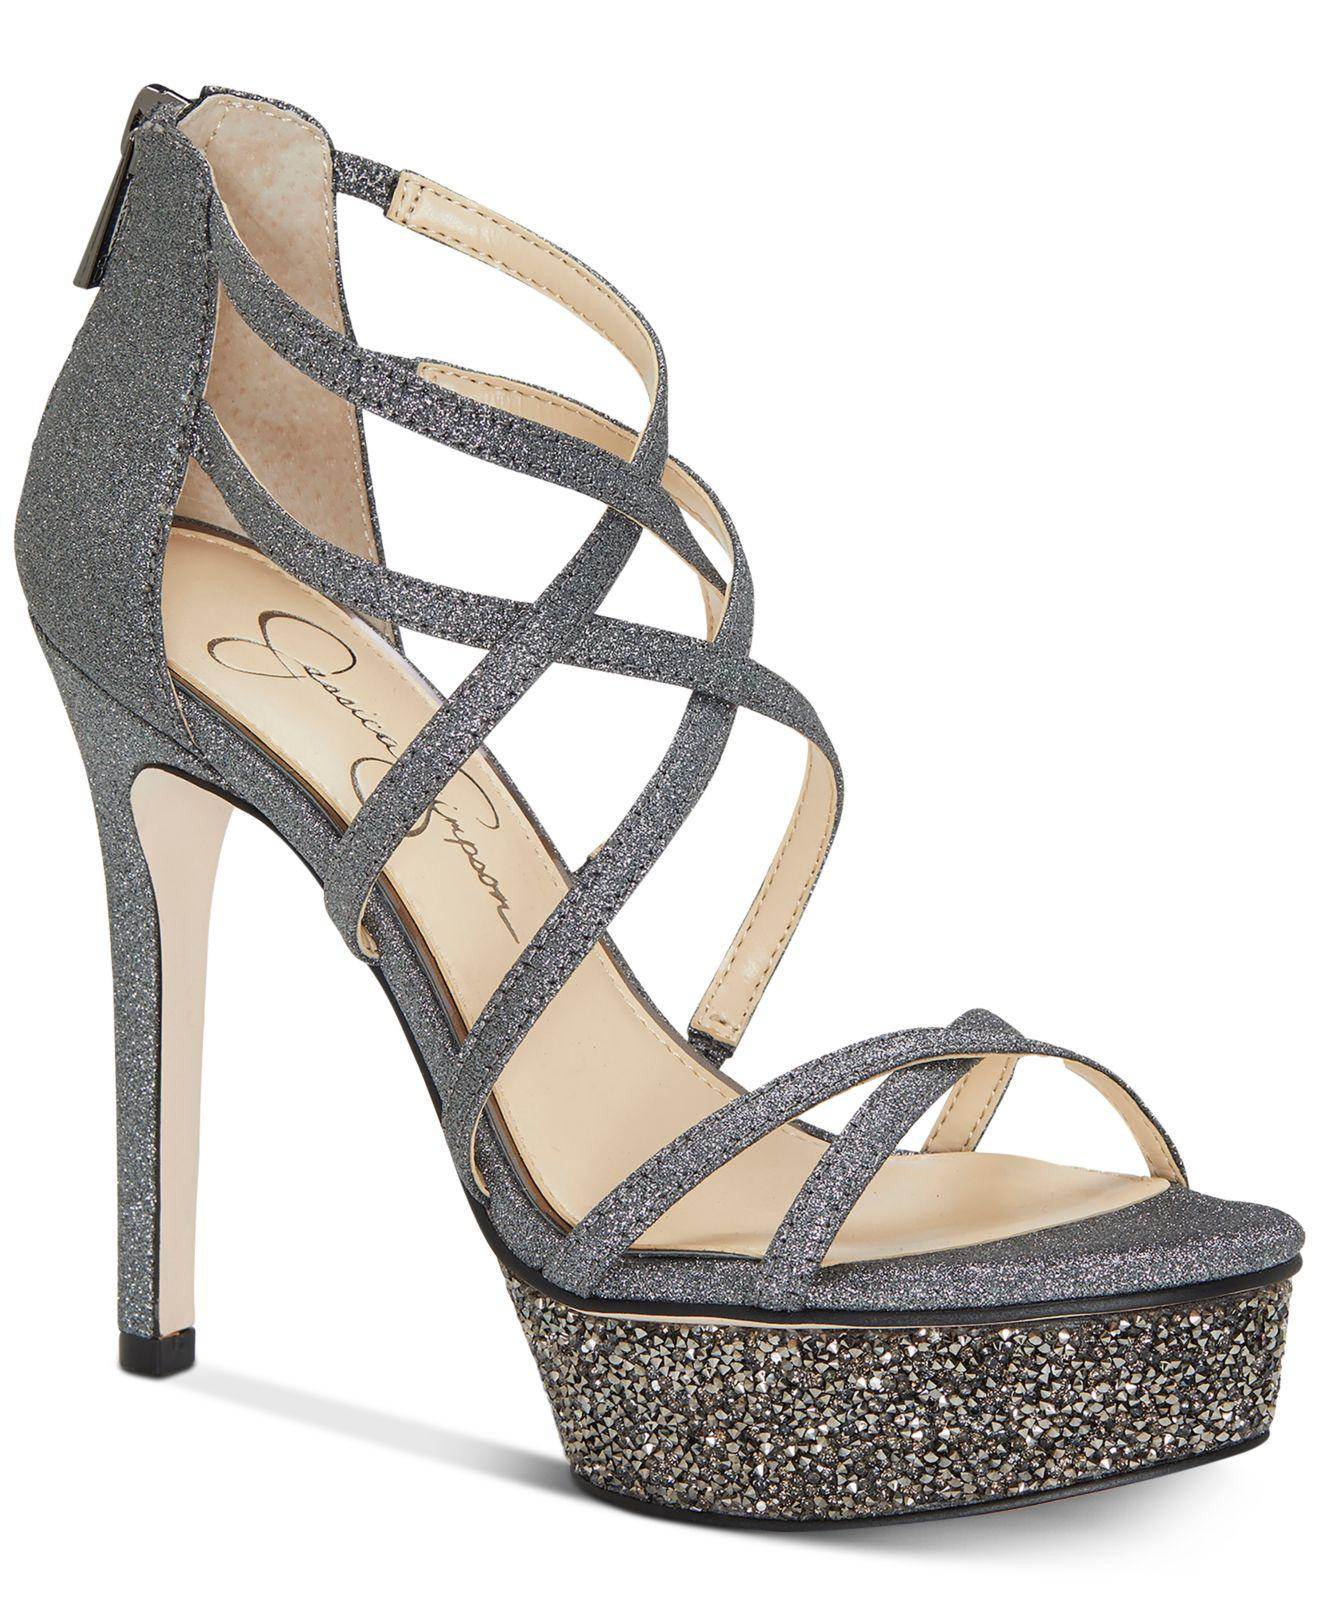 cd1a7efea81 Jessica Simpson. Women s Araya Dress Sandals